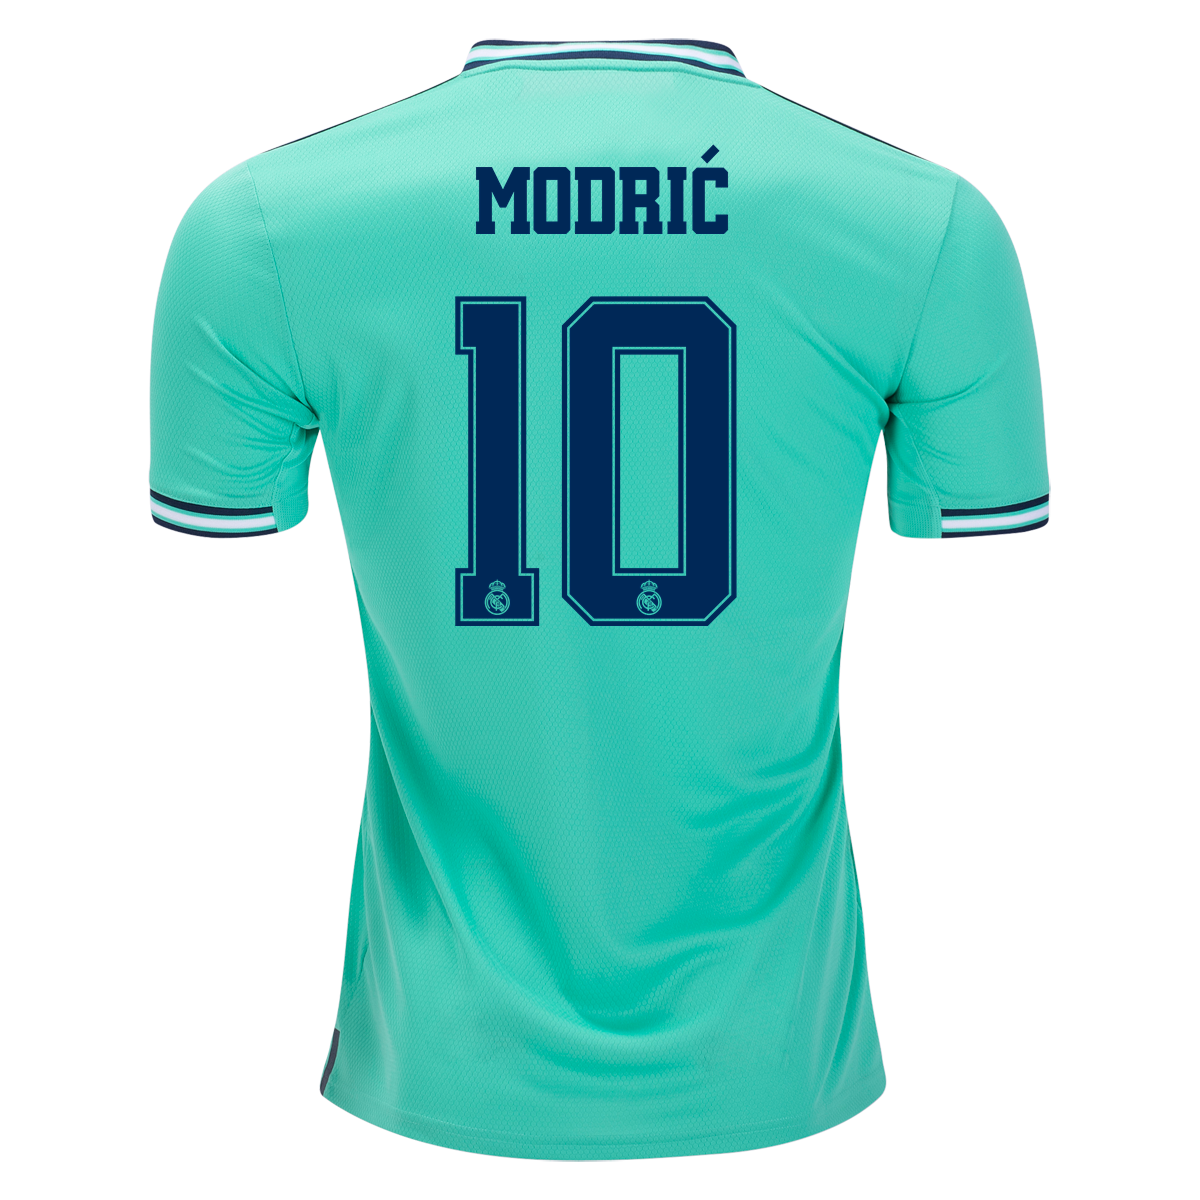 Real Madrid Jersey Real Madrid Shirt Real Madrid Kit Real Madrid Uniform Real Madrid Store Real Madrid Apparel 2 Modric Real Madrid Real Madrid Soccer Jersey